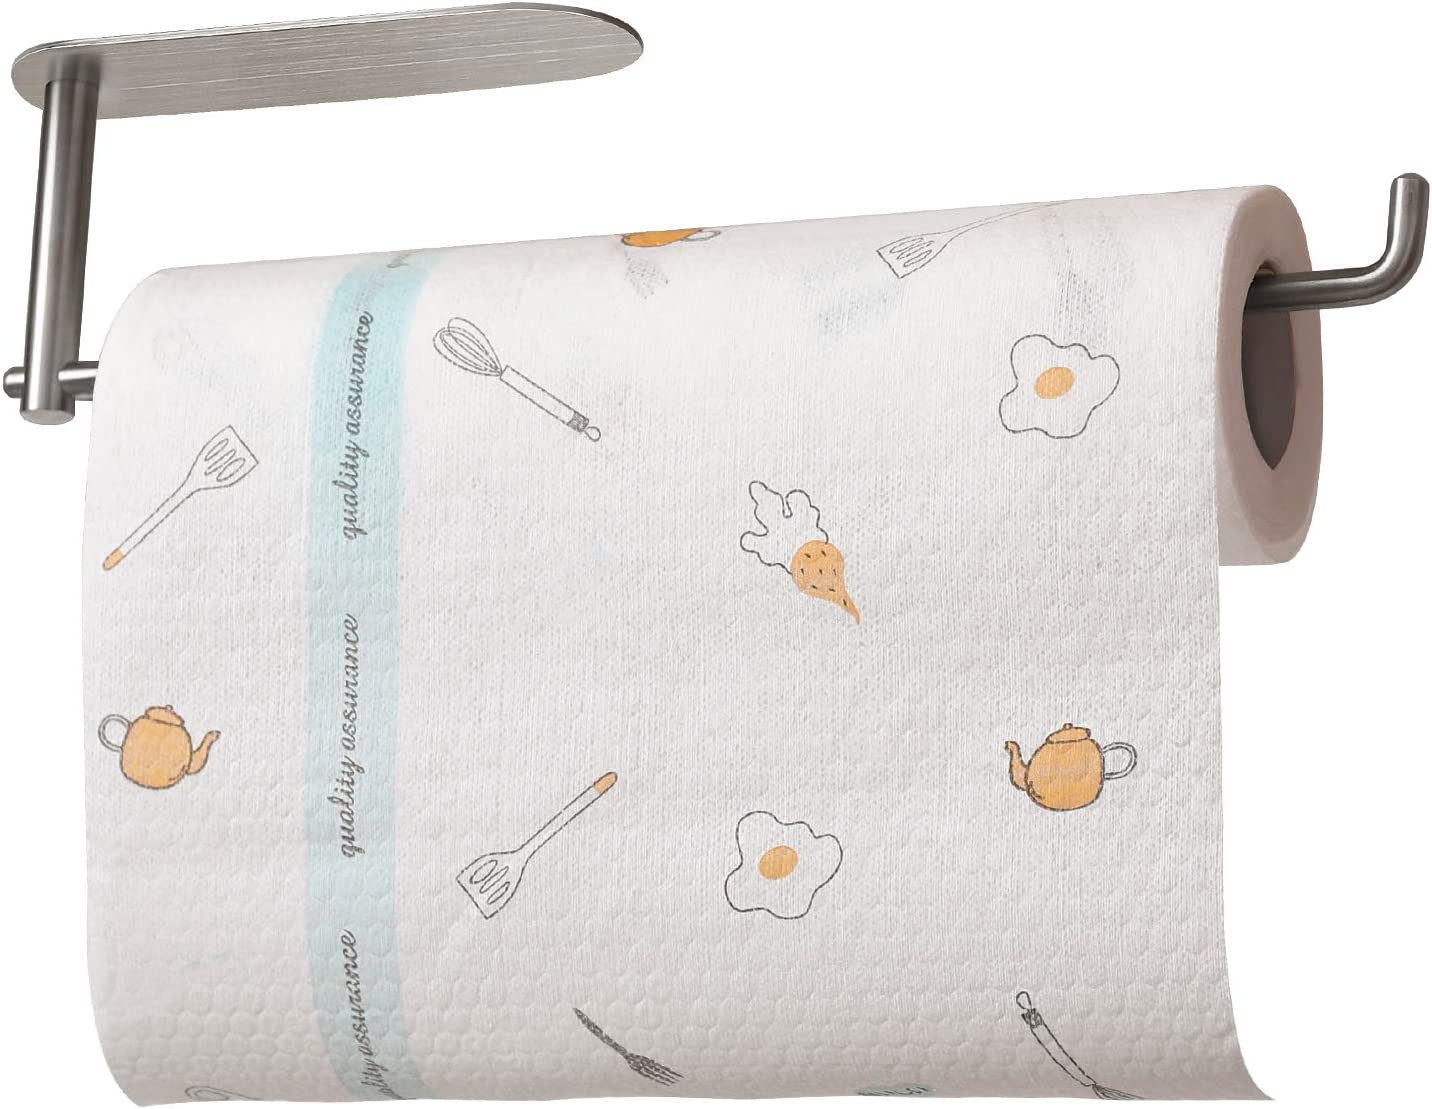 Paper Towel Max 43% OFF Holder Fees free!! Under Cabinet SteelTissue Stainless Ra Sus304